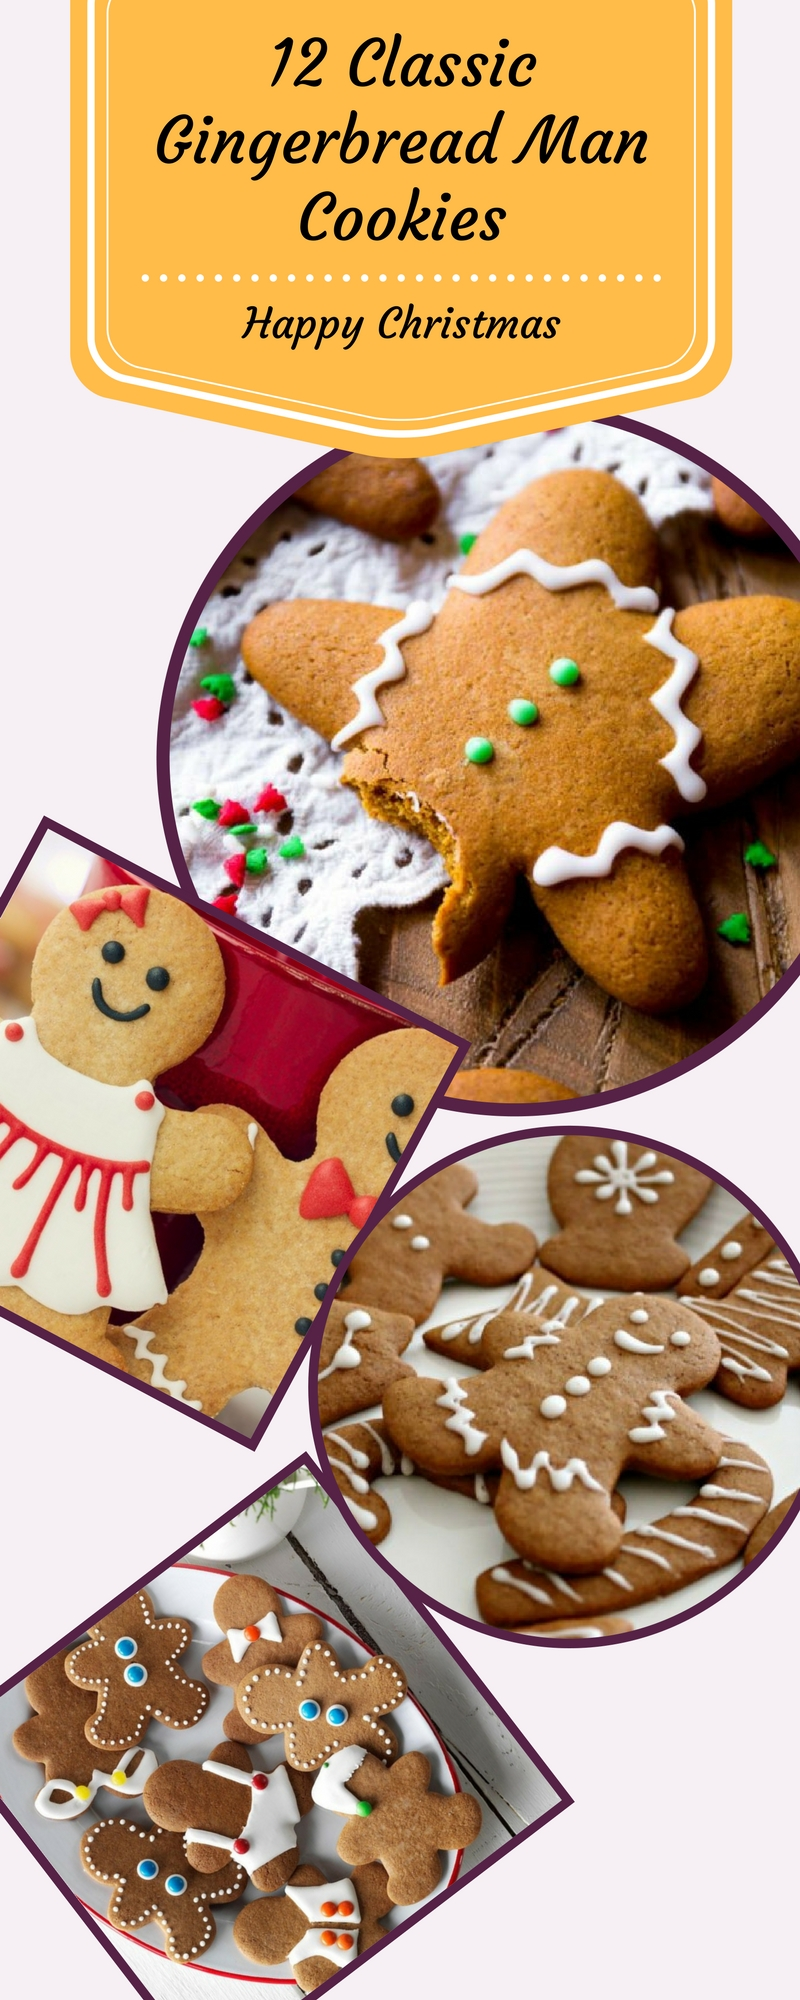 gingerbread man story with pictures pdf